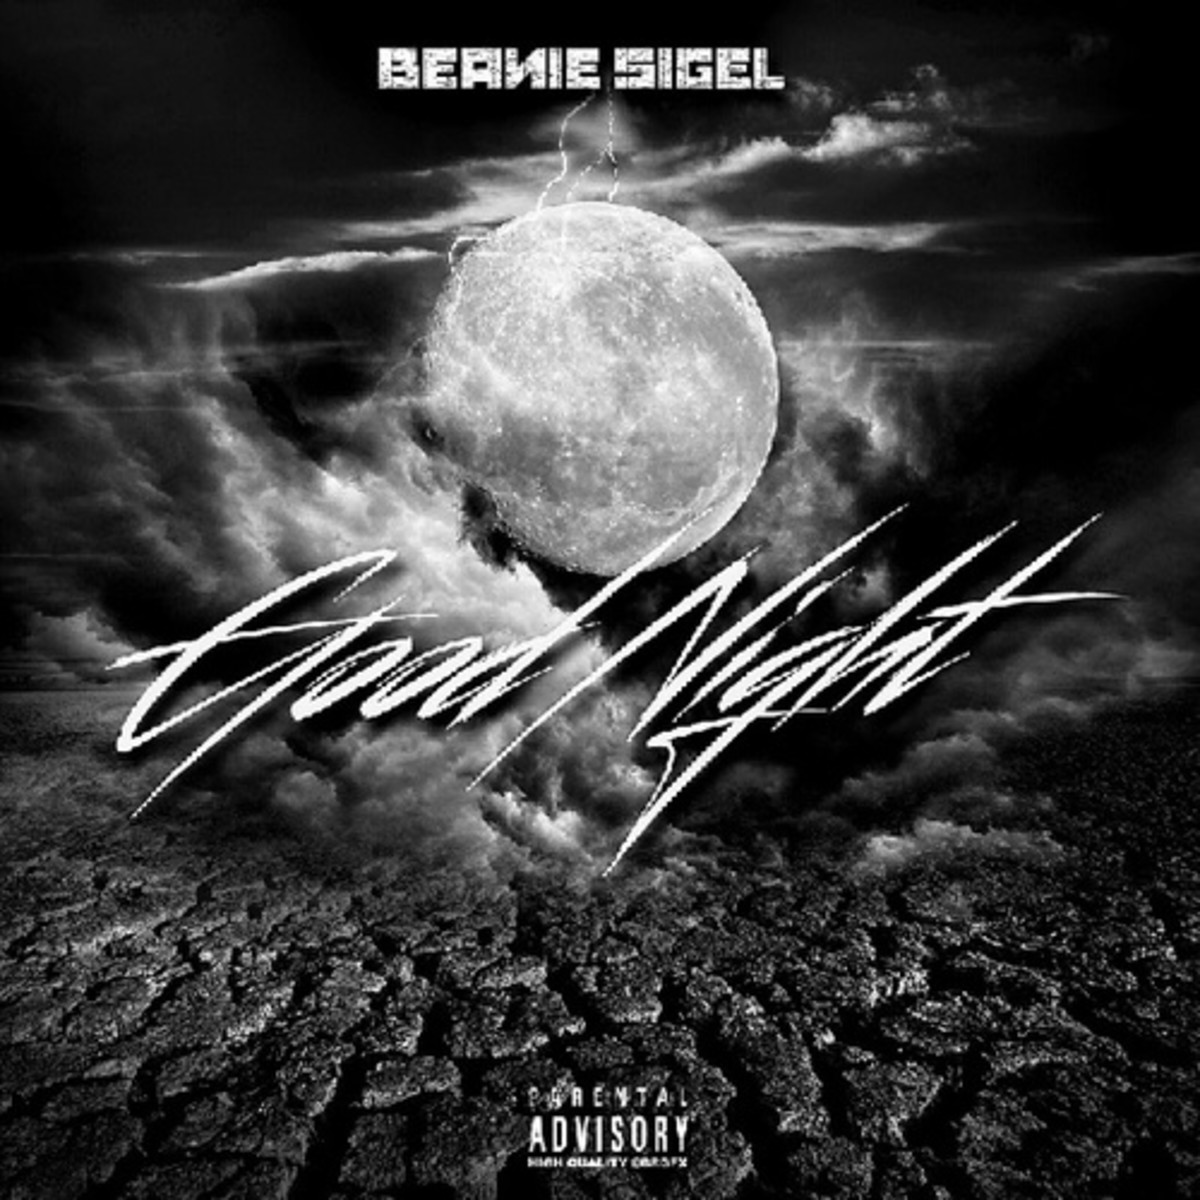 beanie-sigel-good-night.jpg